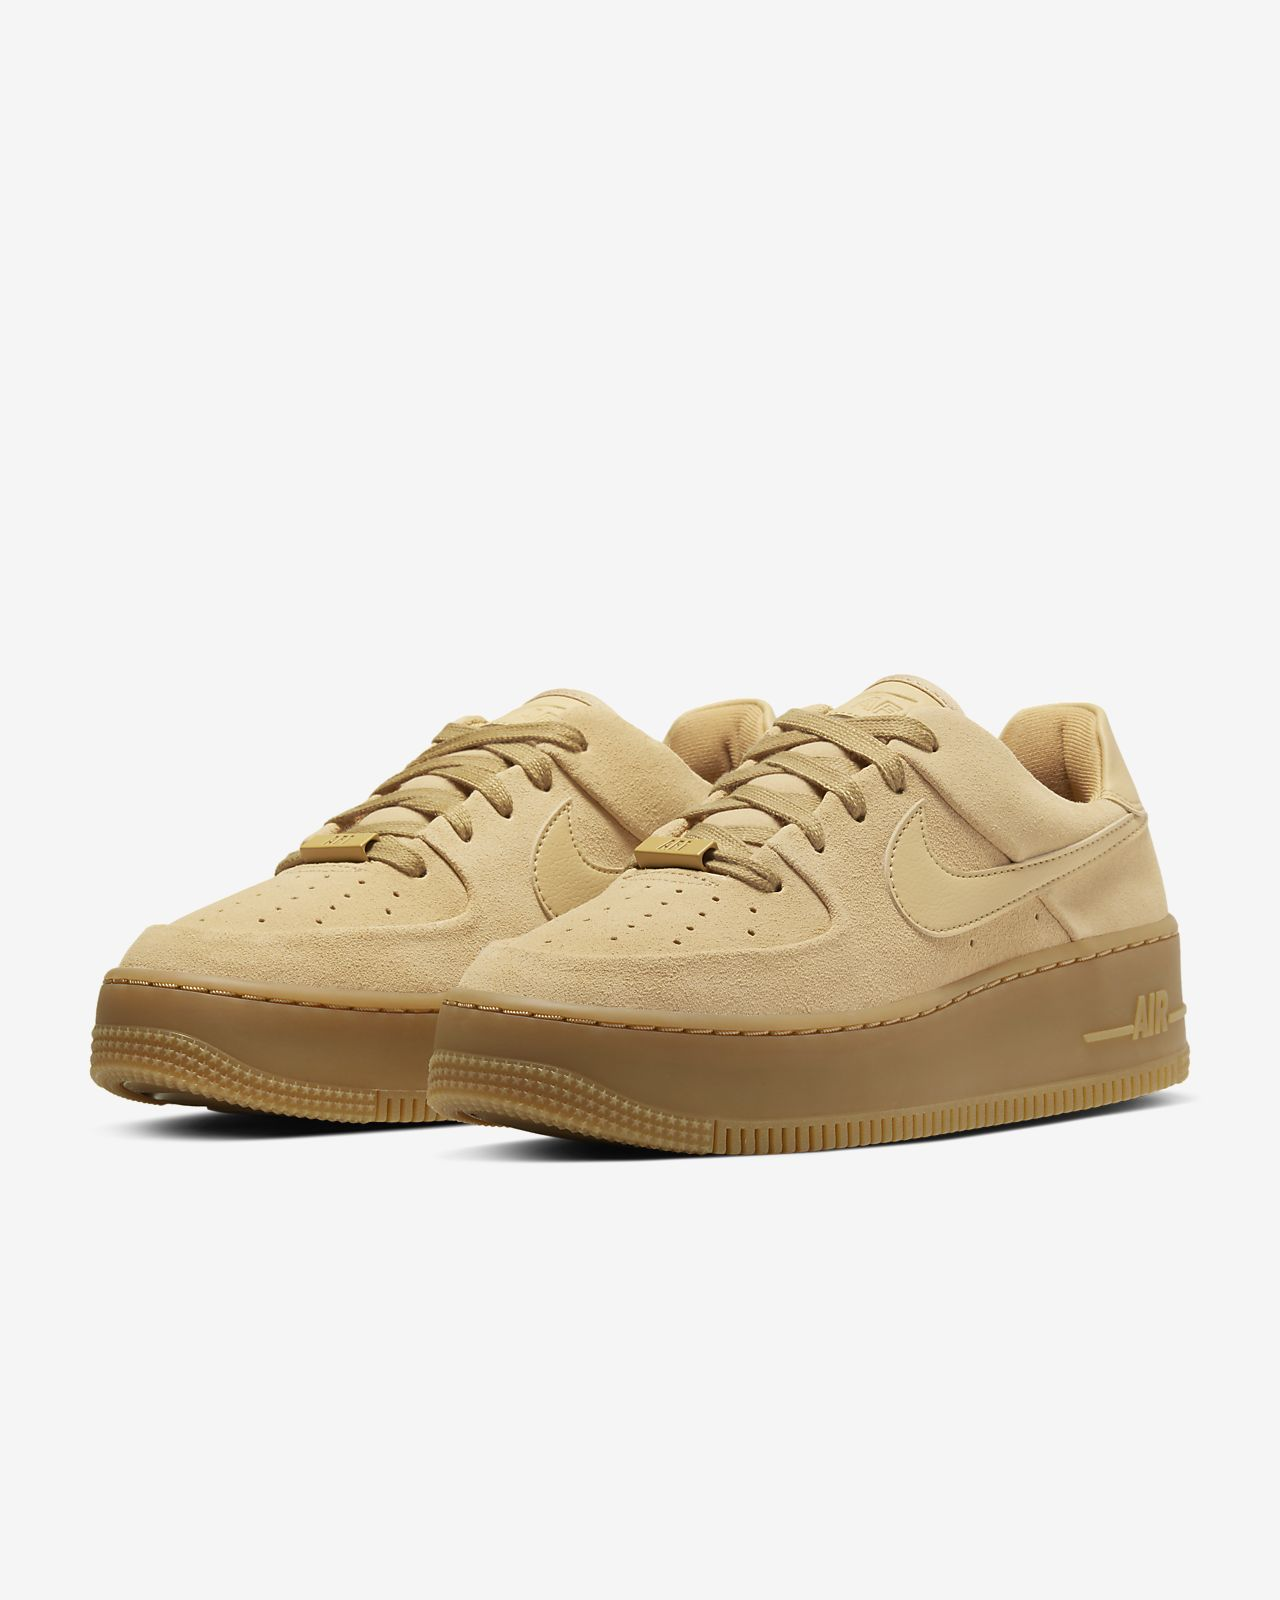 Nike Air Force 1 07 LV8 Suede Jasny Beż